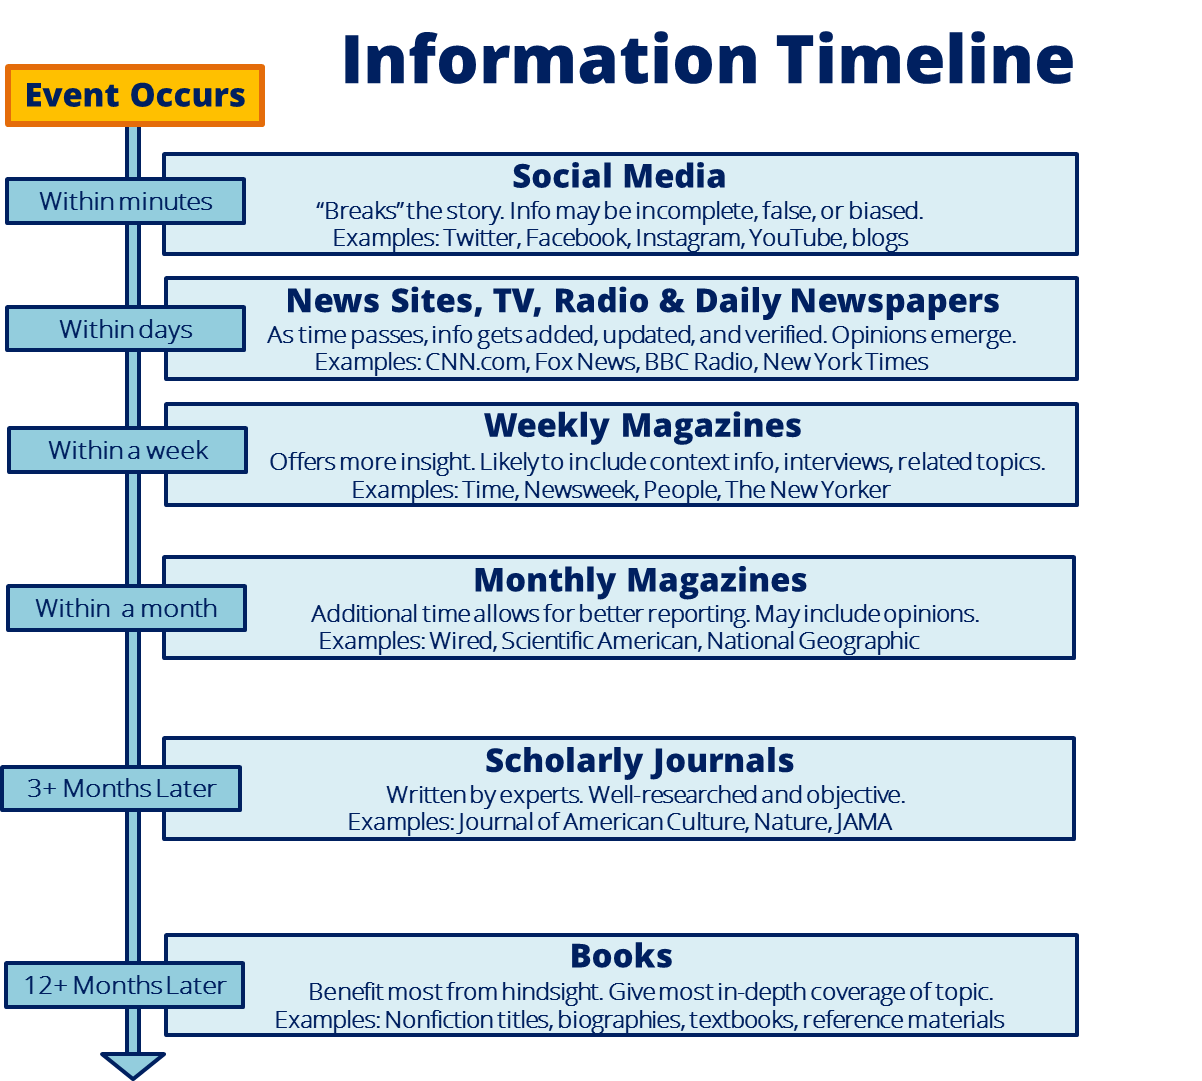 a chart describing the information timeline